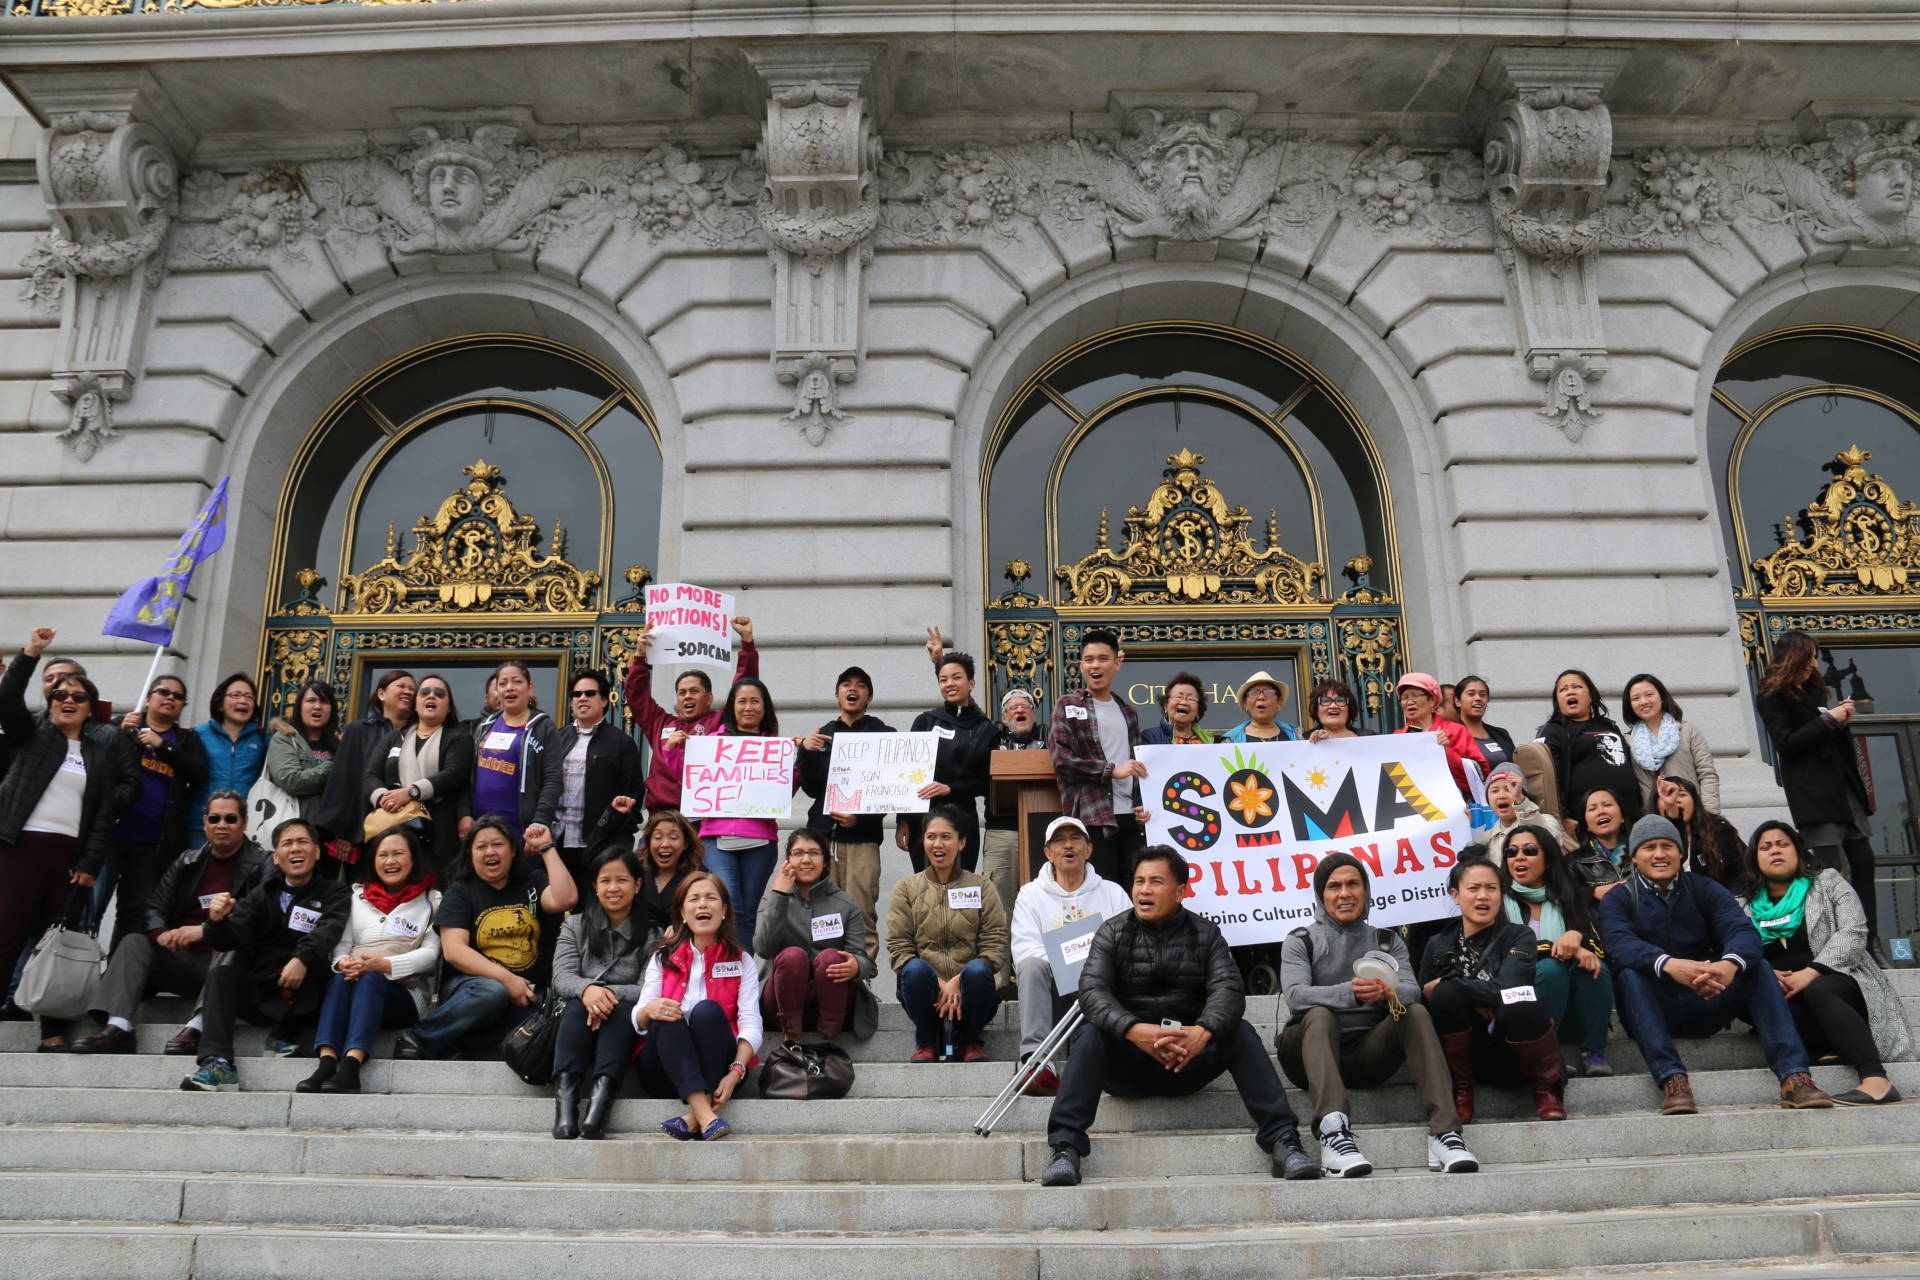 Board of Supervisors Establishes SoMa as a Filipino Cultural Heritage District